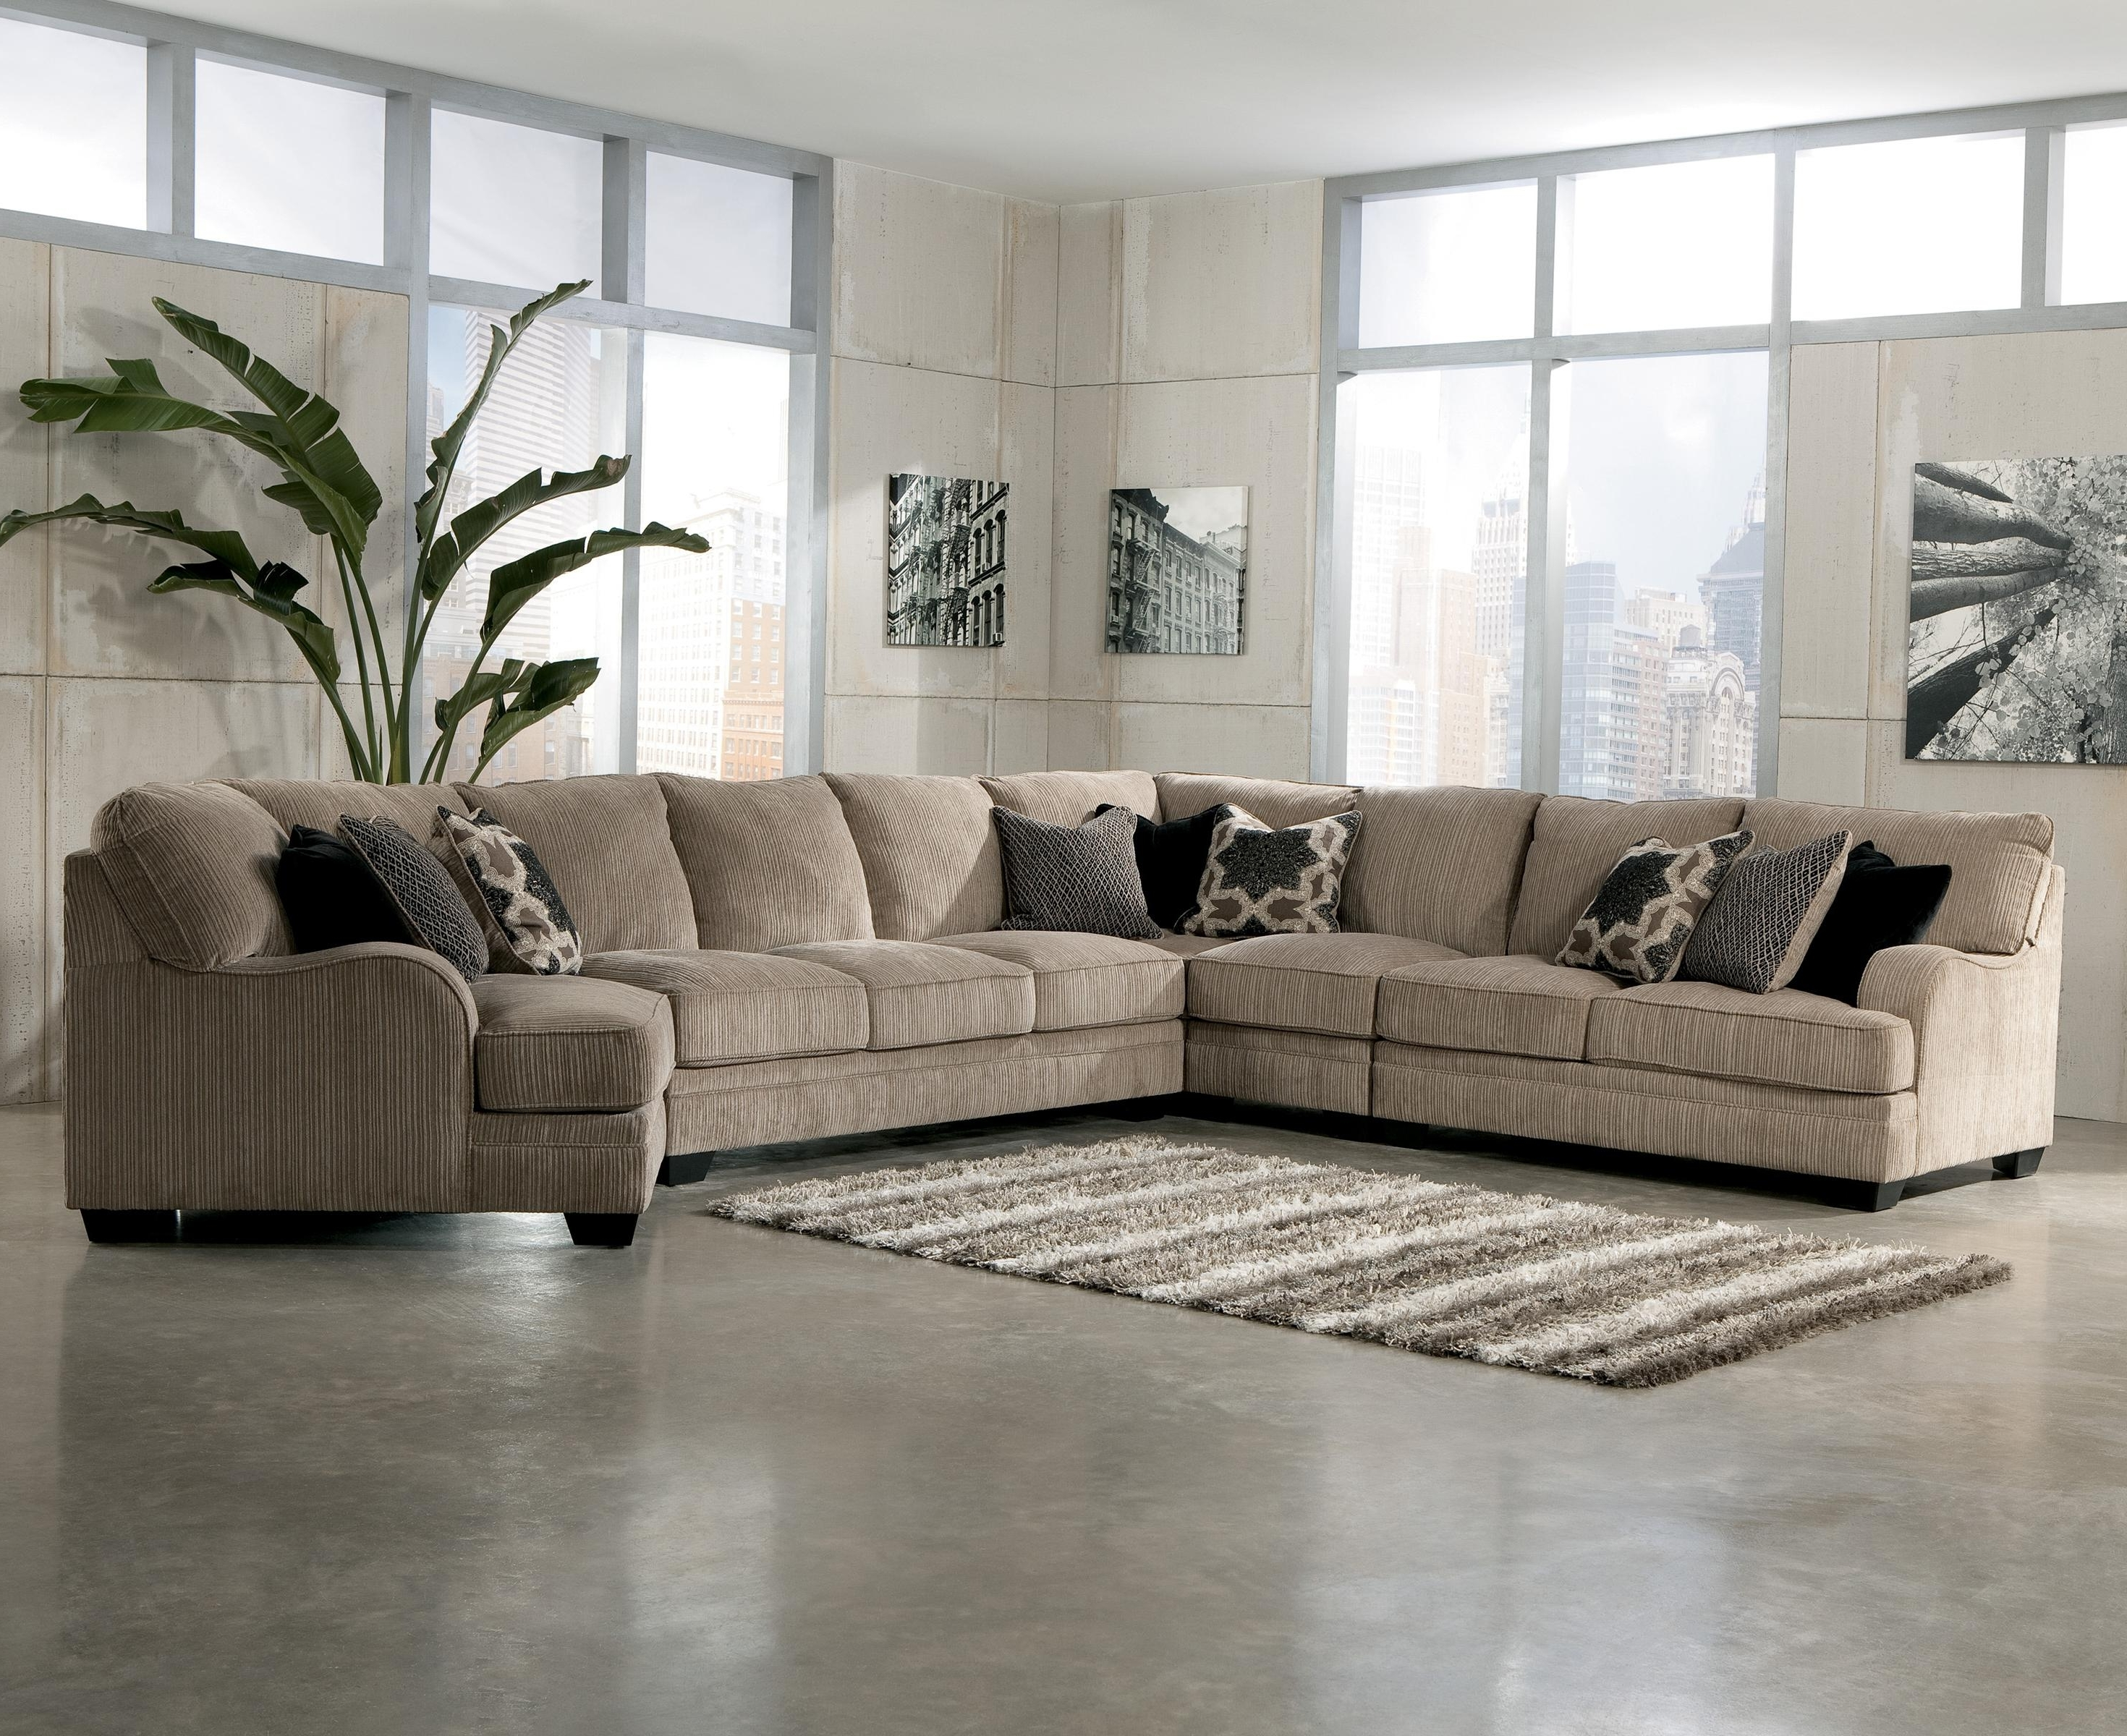 Green Bay Wi Sectional Sofas For Newest Signature Designashley Katisha – Platinum 5 Piece Sectional (View 13 of 20)